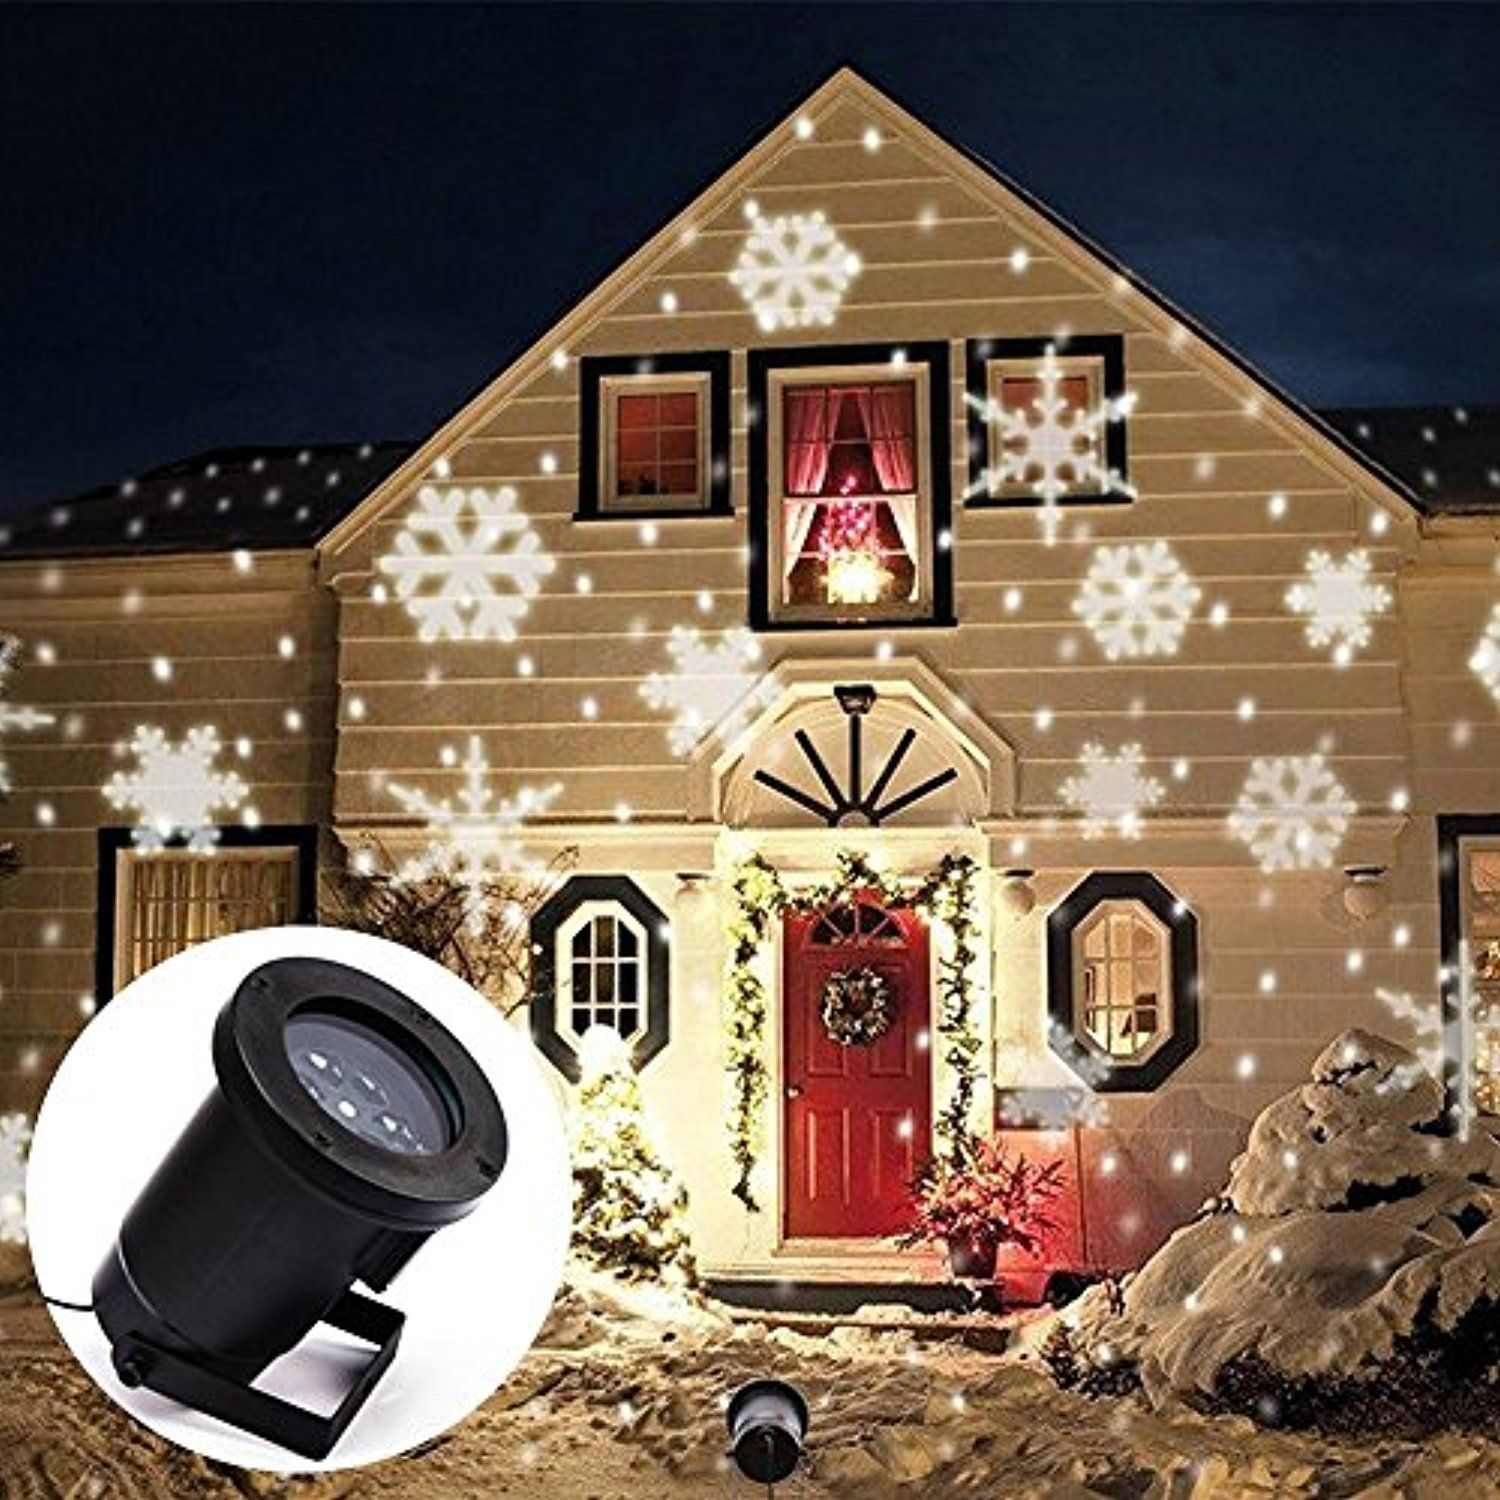 Christmas Projection Lights.Pin On My Favourite Hope You Like It As Well